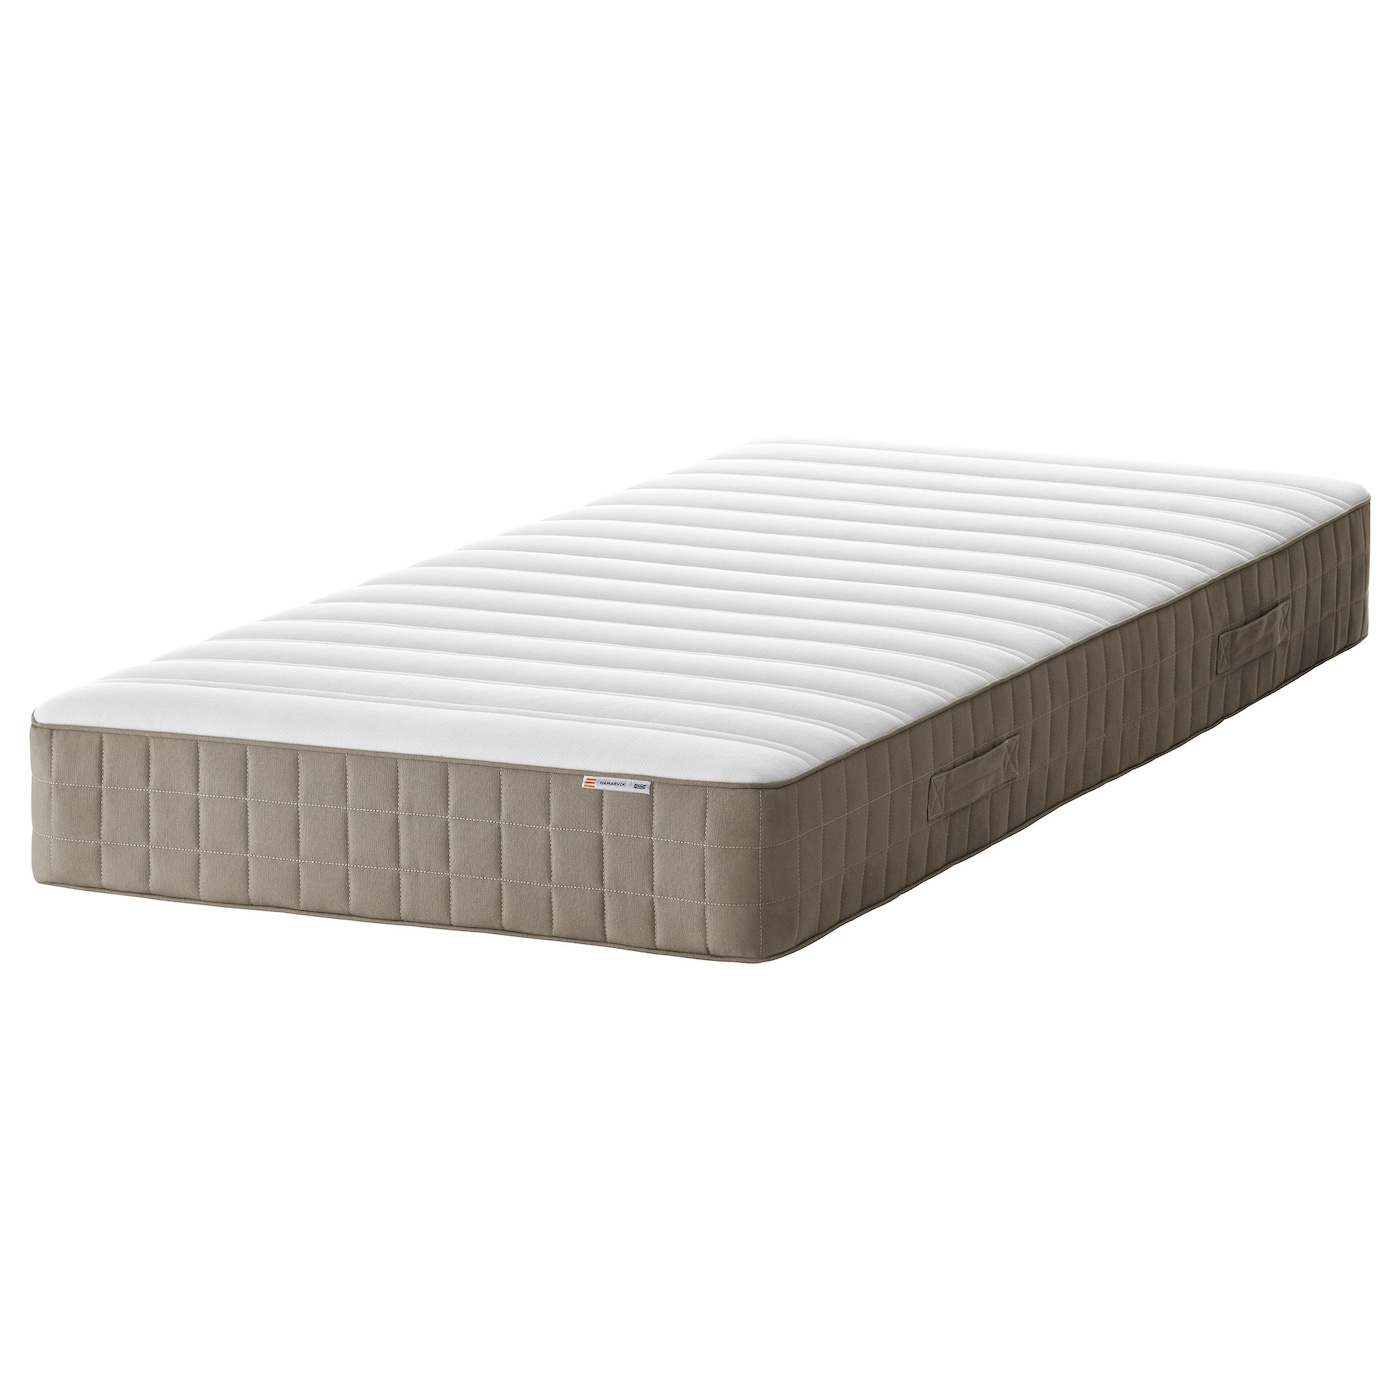 hamarvik matelas ressorts ferme beige fonc 90x200 cm ikea. Black Bedroom Furniture Sets. Home Design Ideas